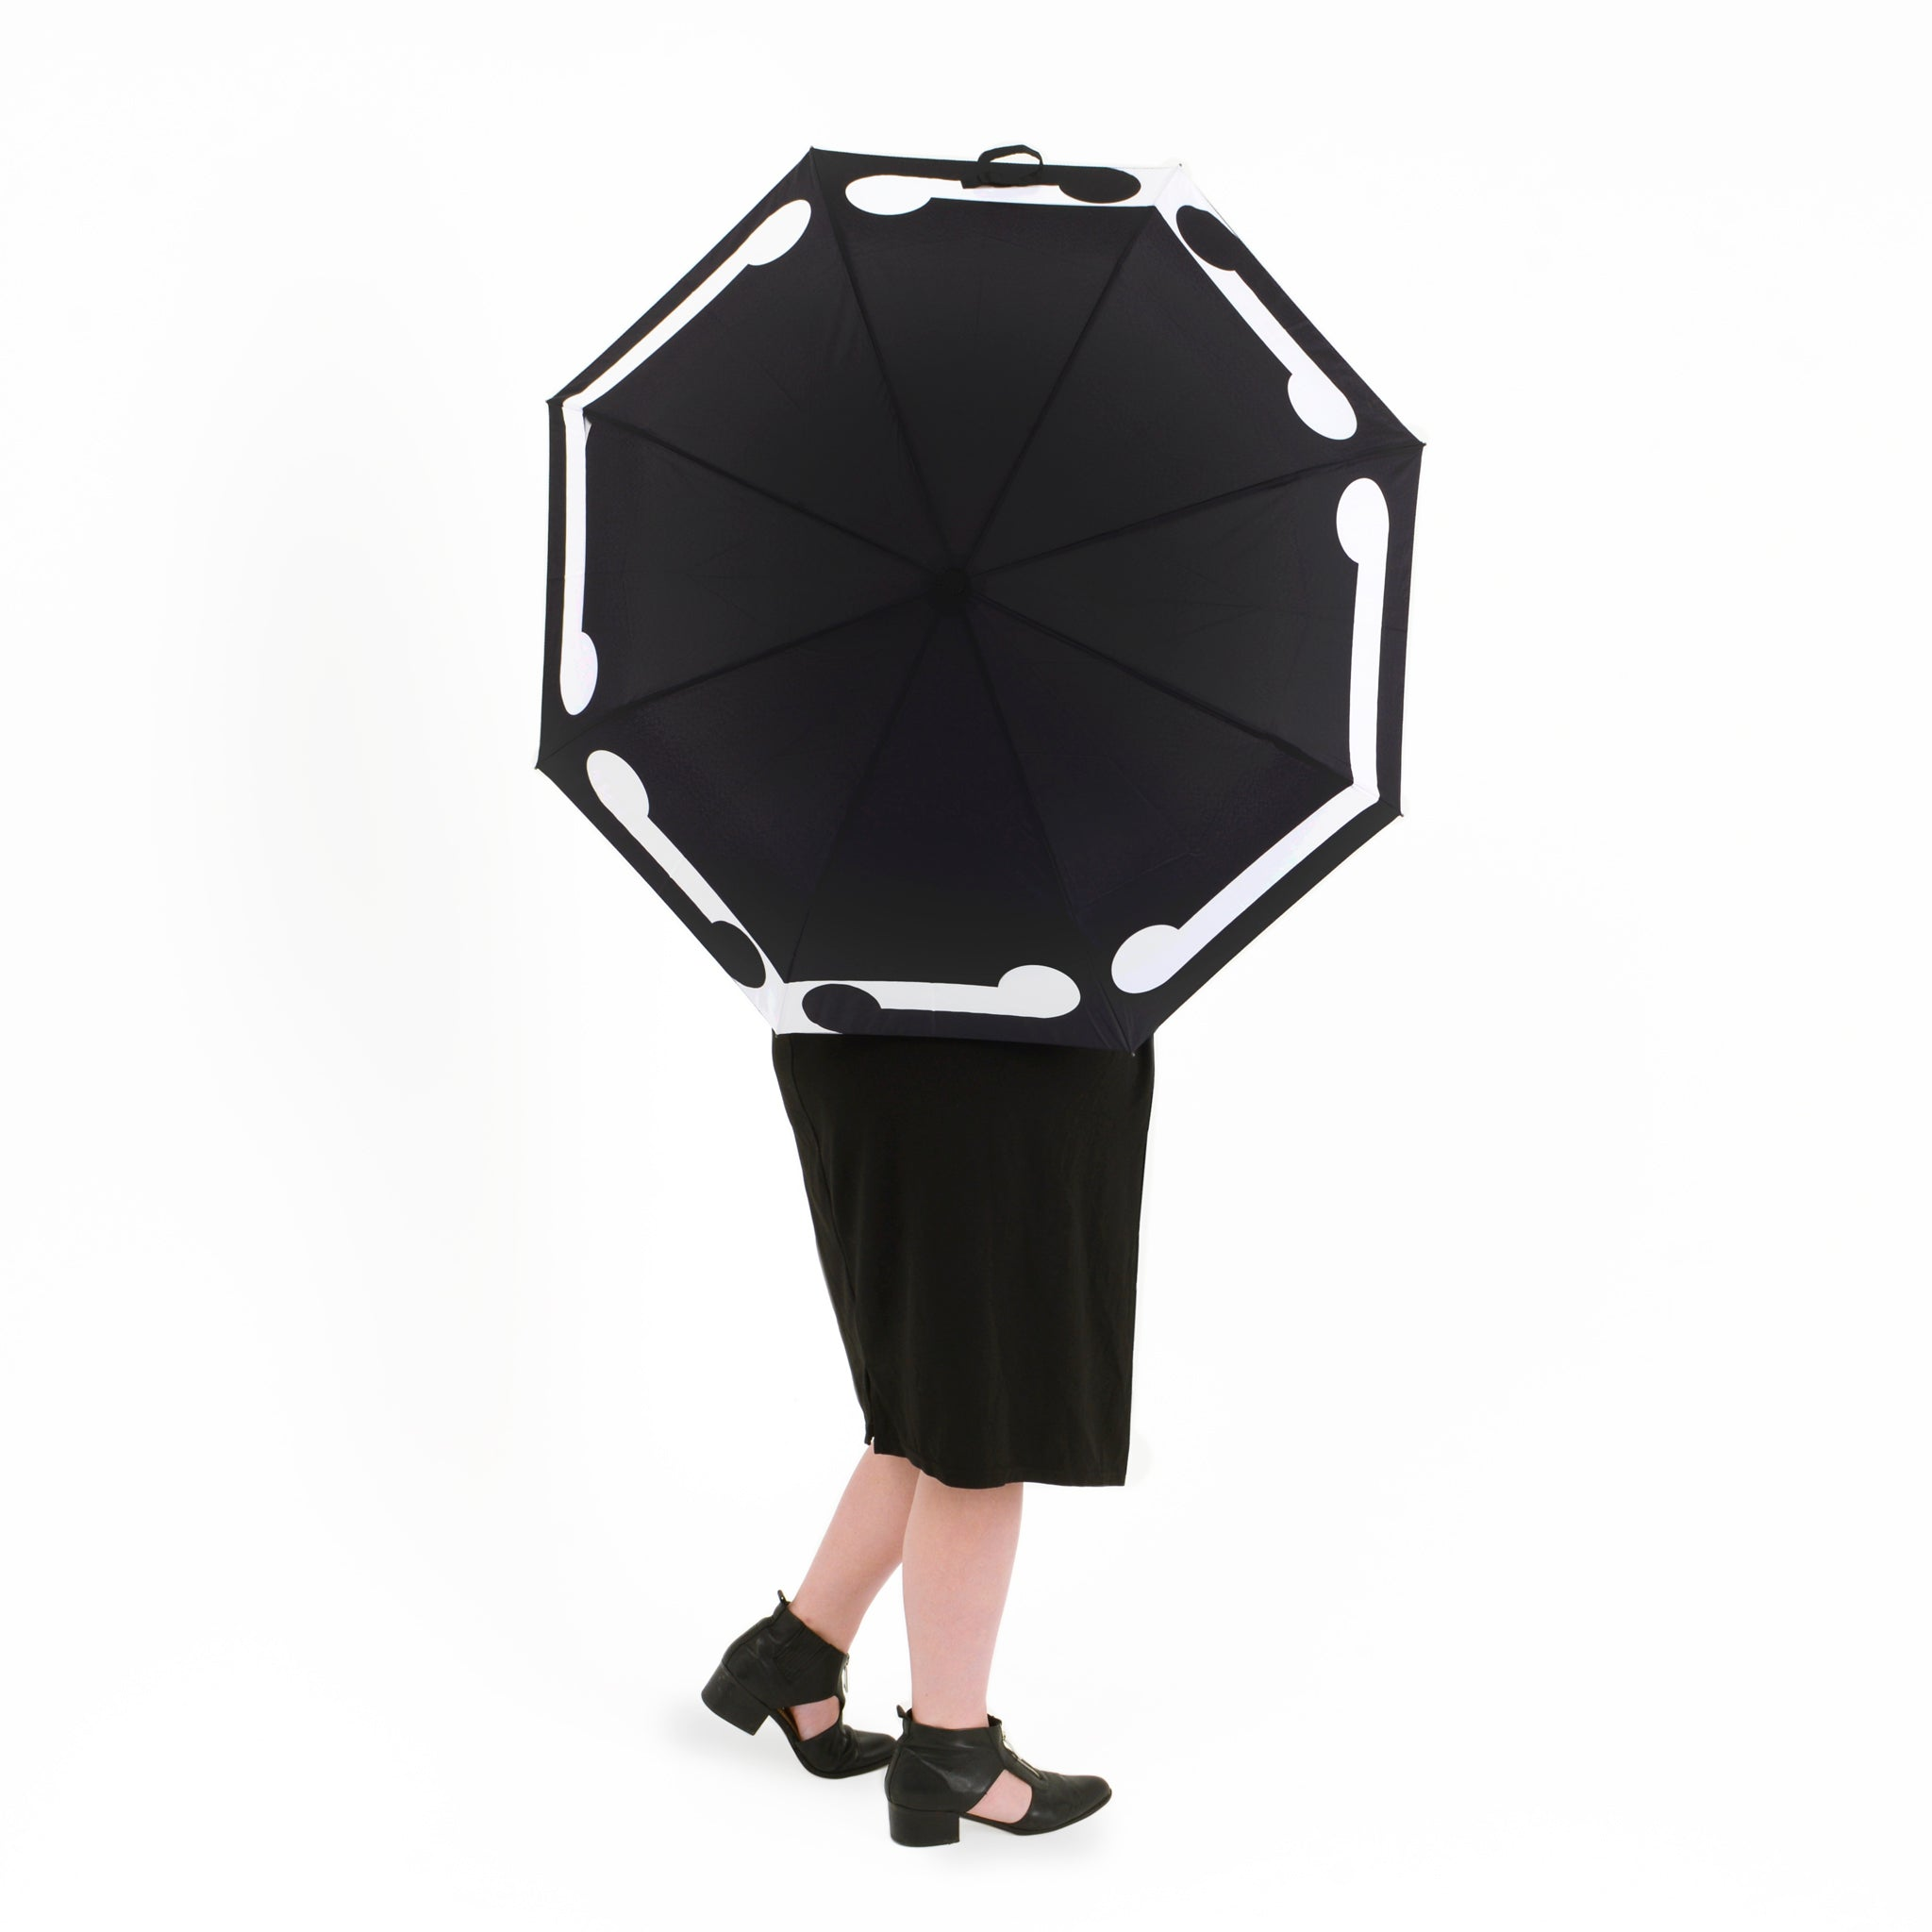 Gordon Walters Black Umbrella Image